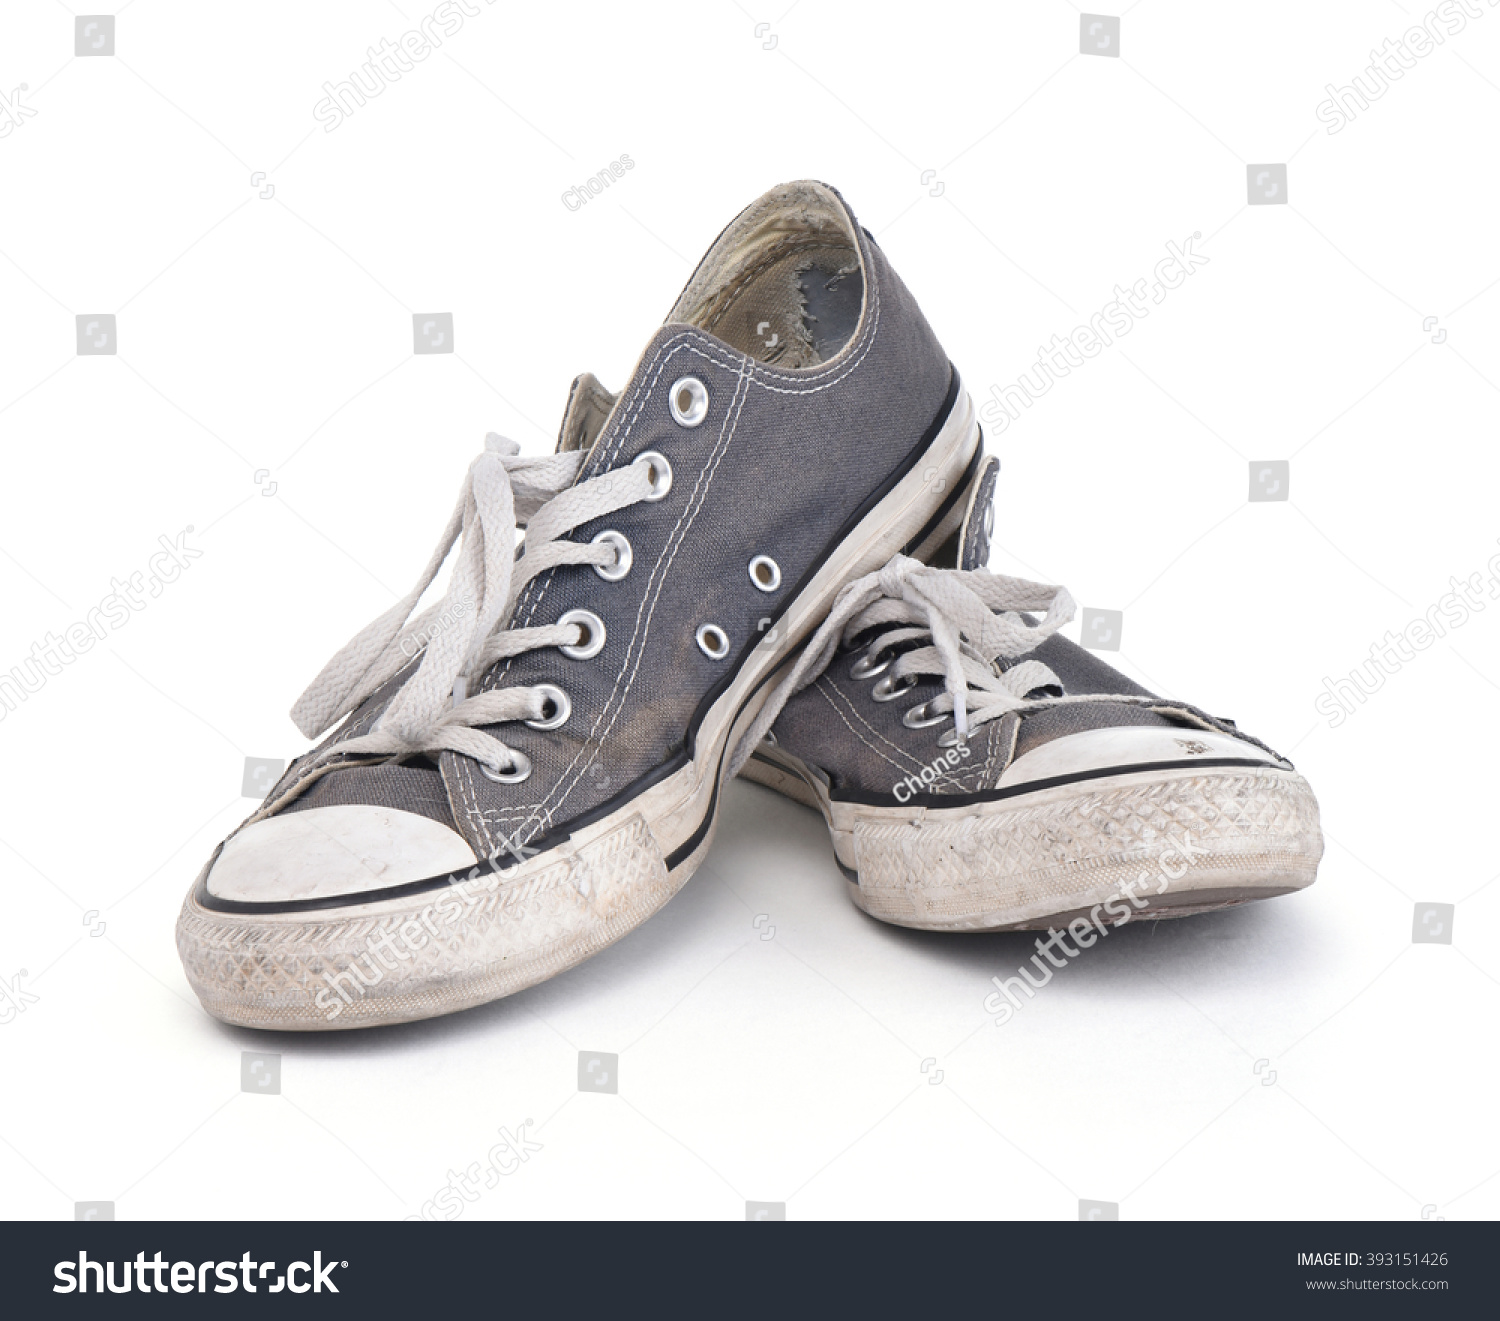 ddfb0591 LOS ANGELES , USA - MARCH 19, 2016 Old dirty converse sneakers isolated on  white